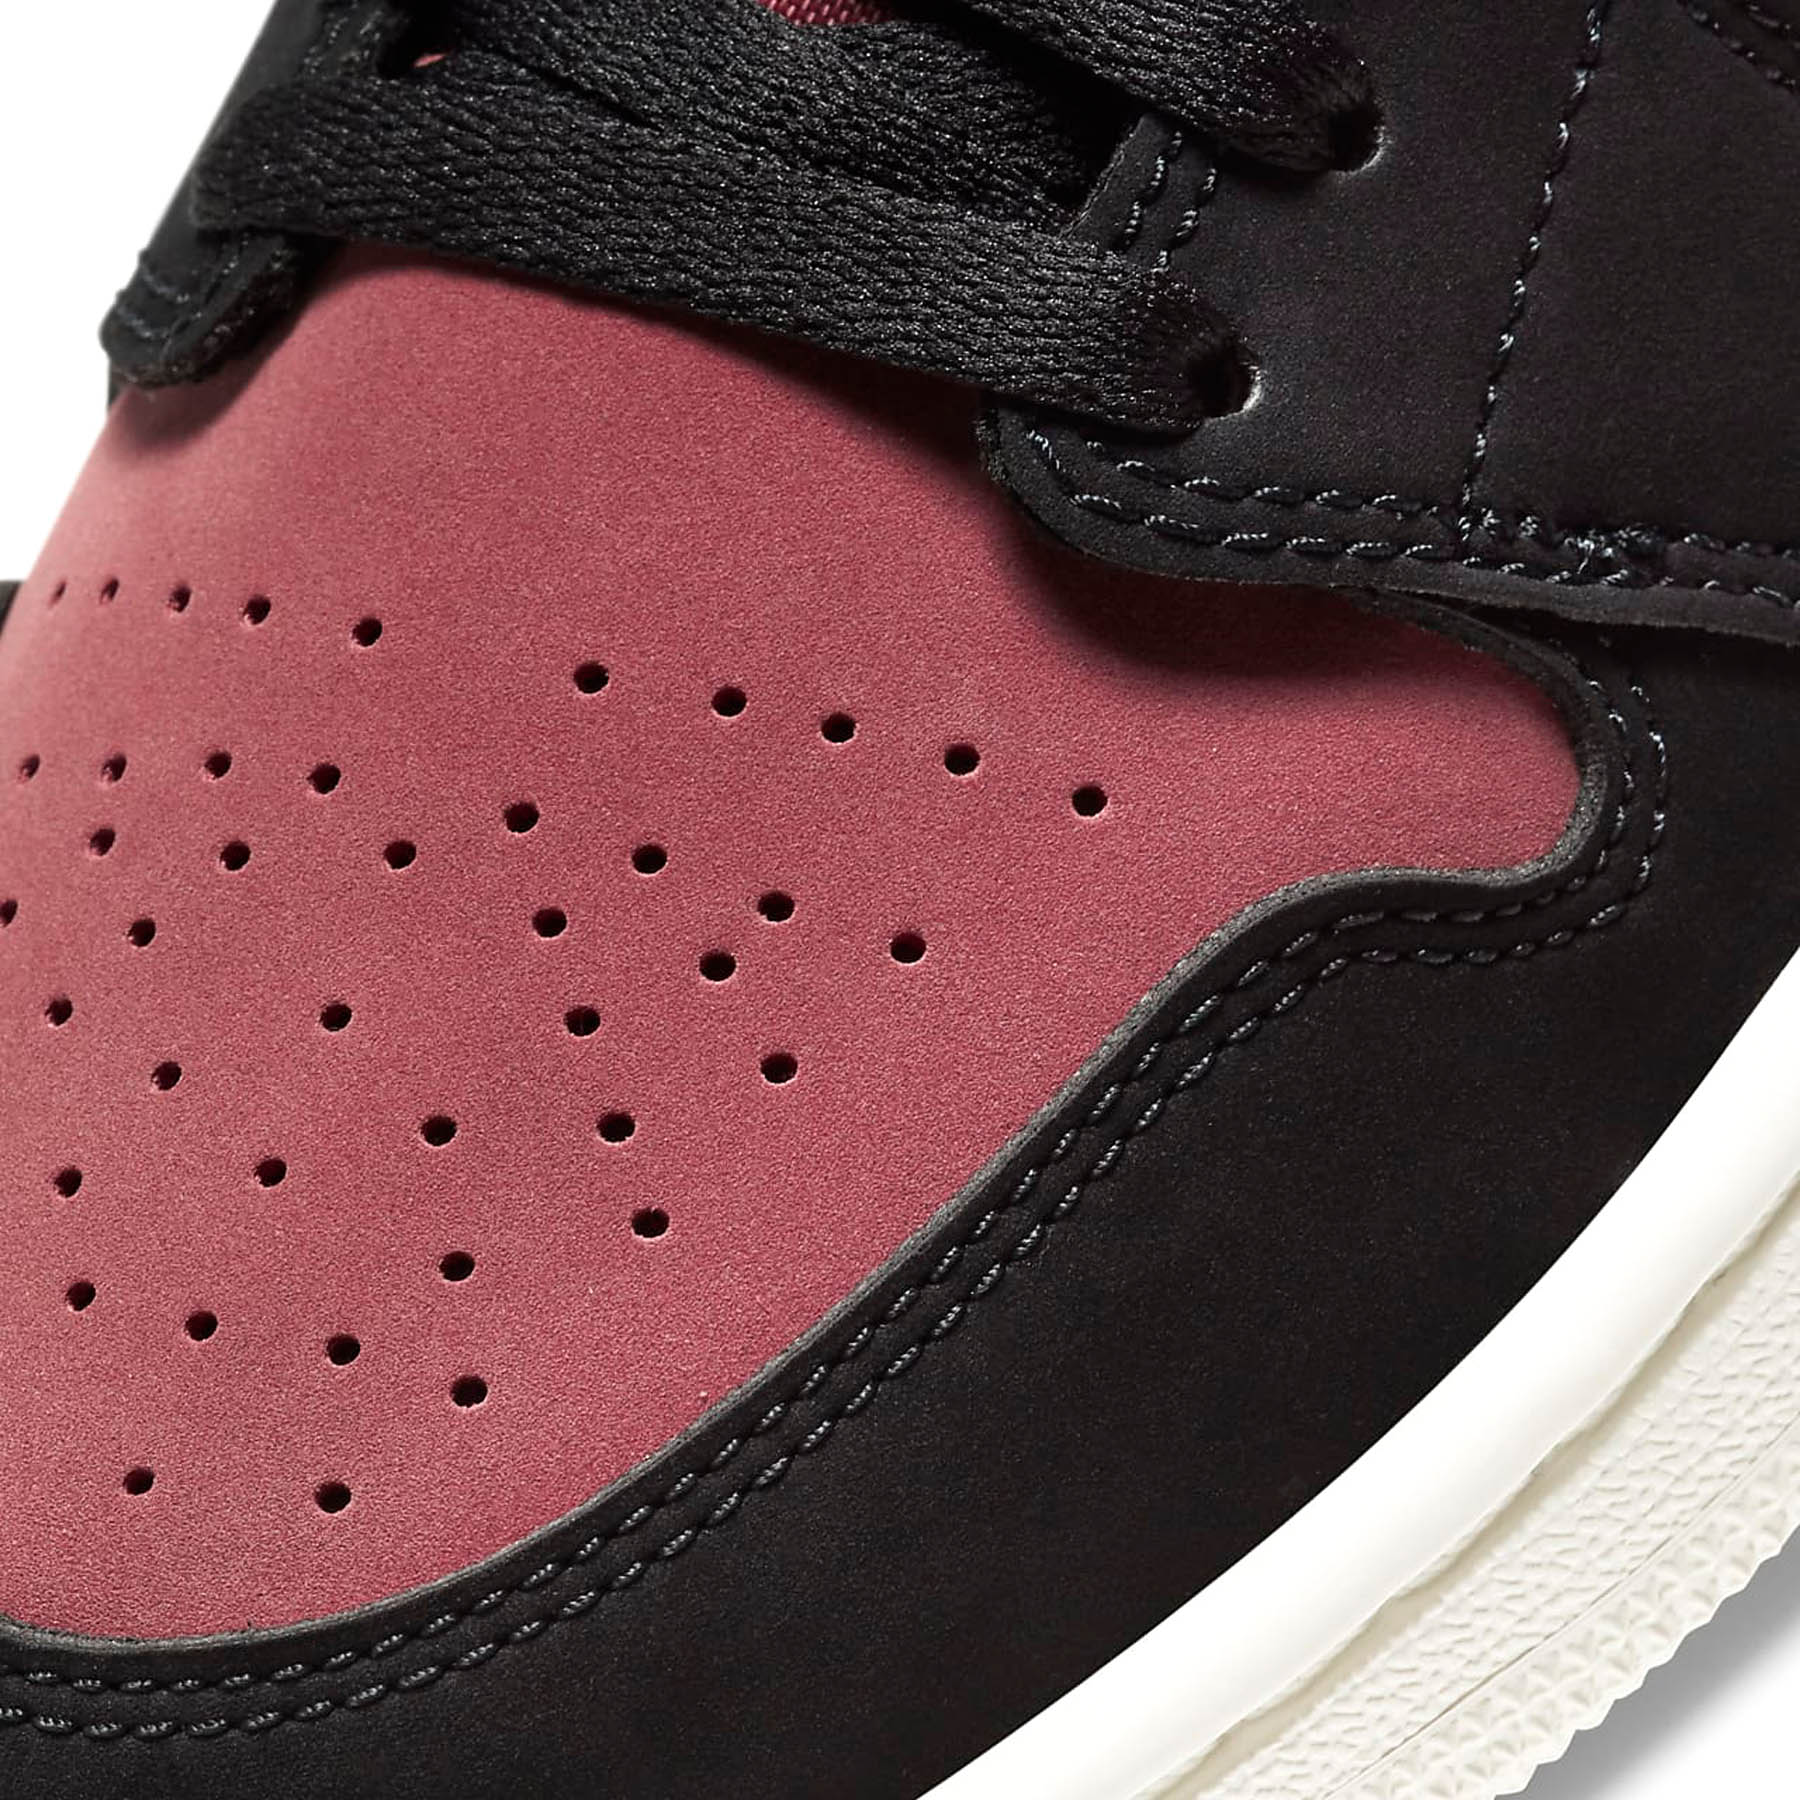 Air Jordan 1 Wmns Mid 'Burgundy Dusty Pink' - Kick Game